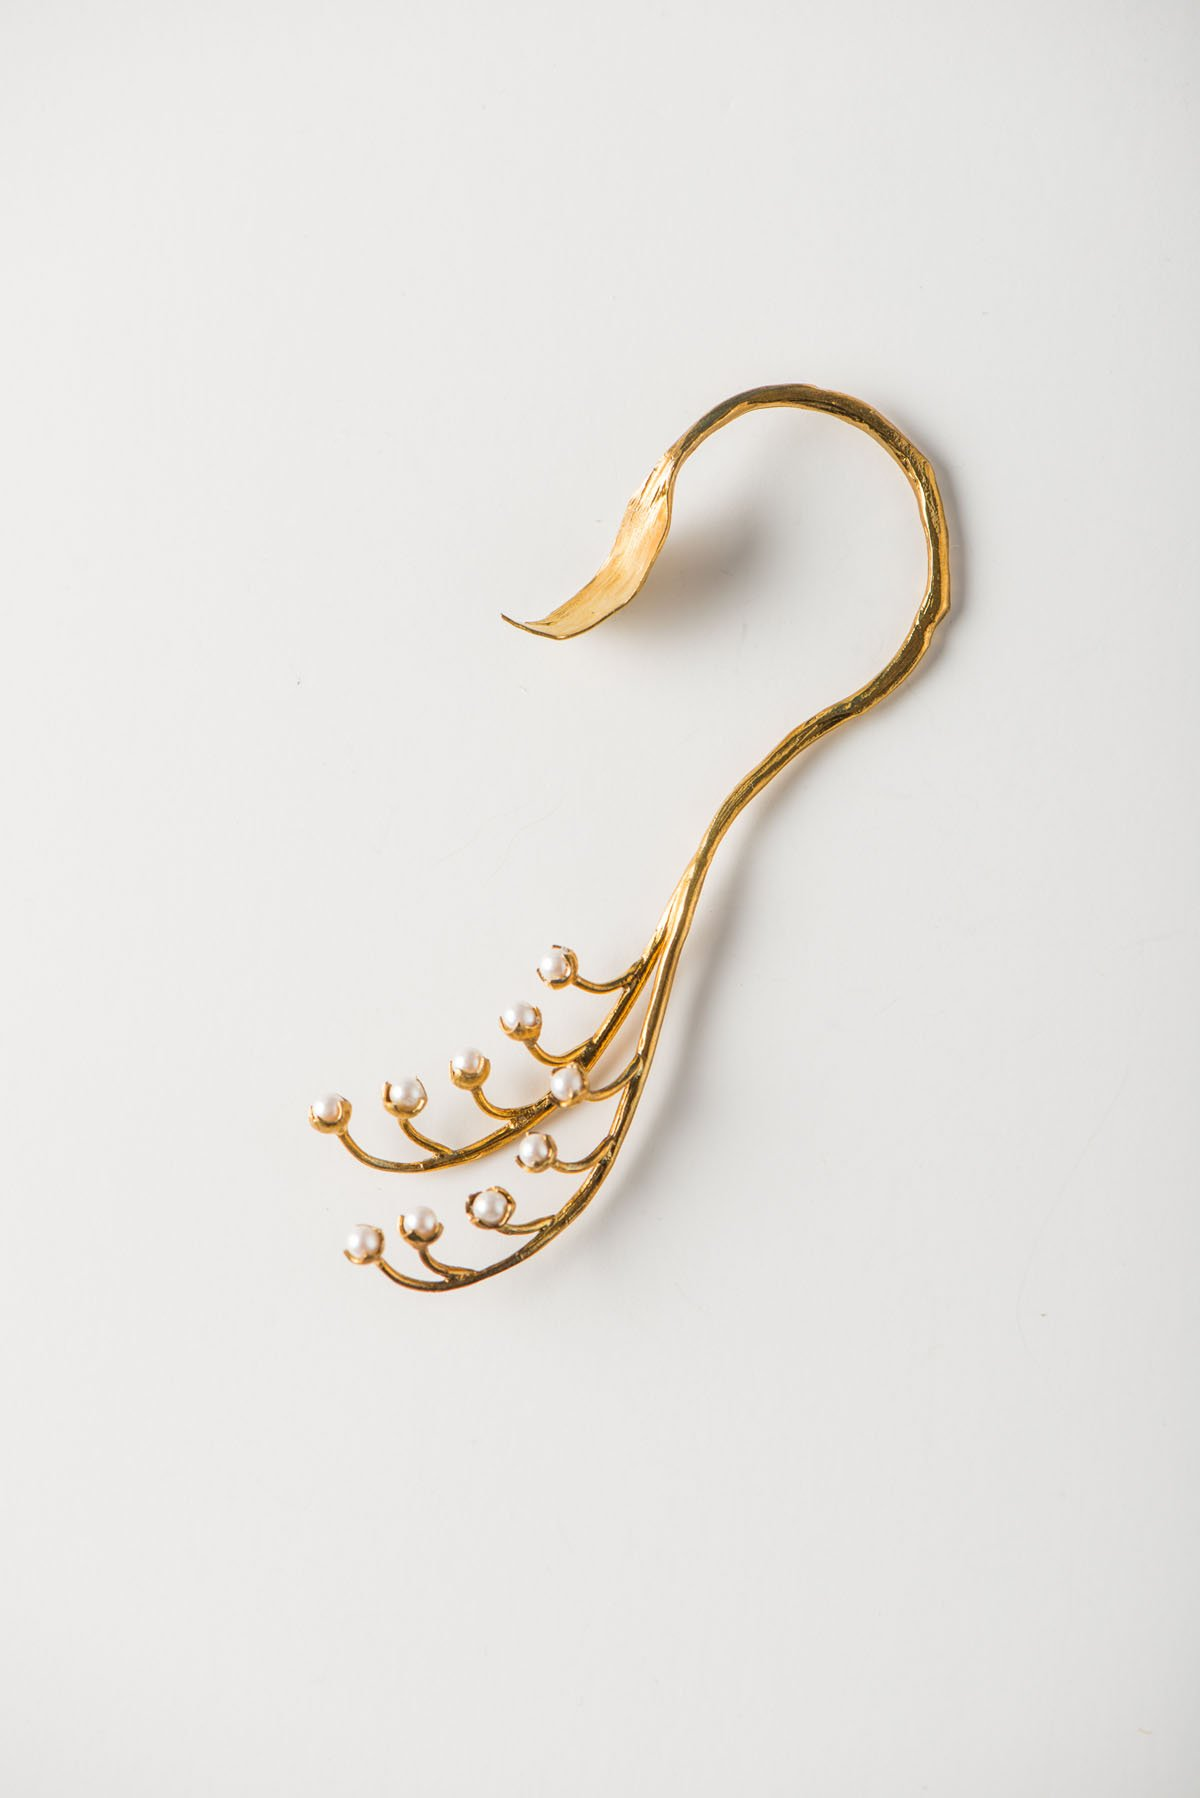 Lily of the Valley Ear Cuff with Pearls | Wedding & Bridal | Handmade in Japan